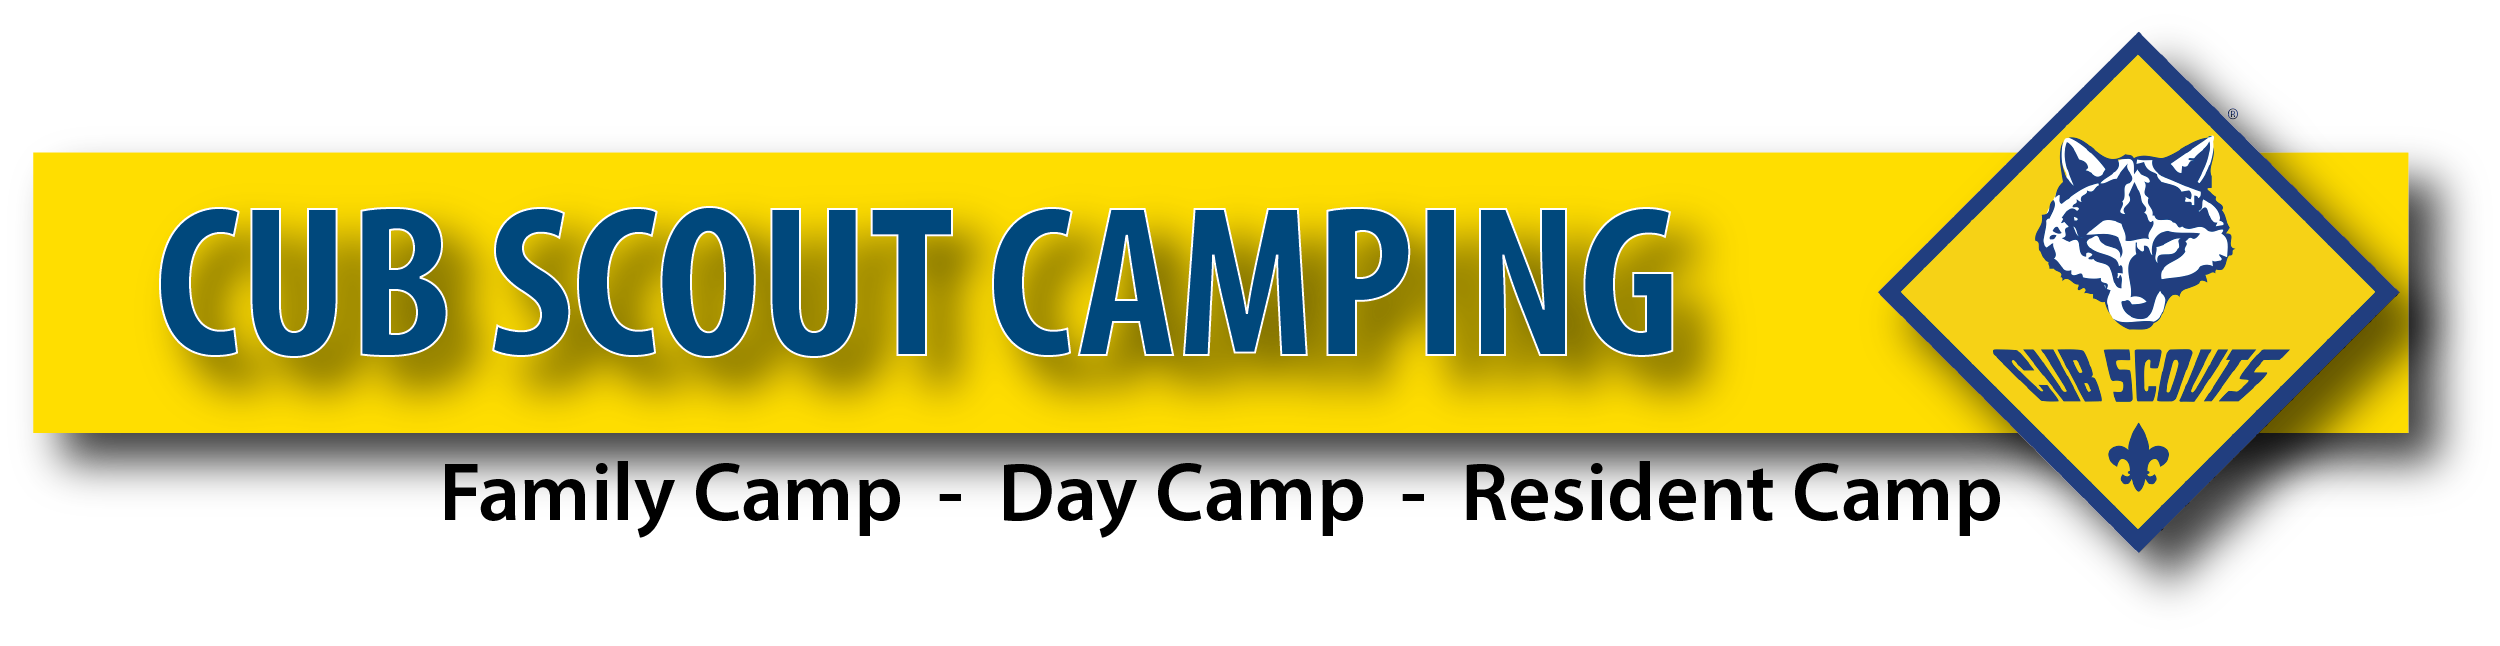 Image result for 2019 Cub Scout Camping